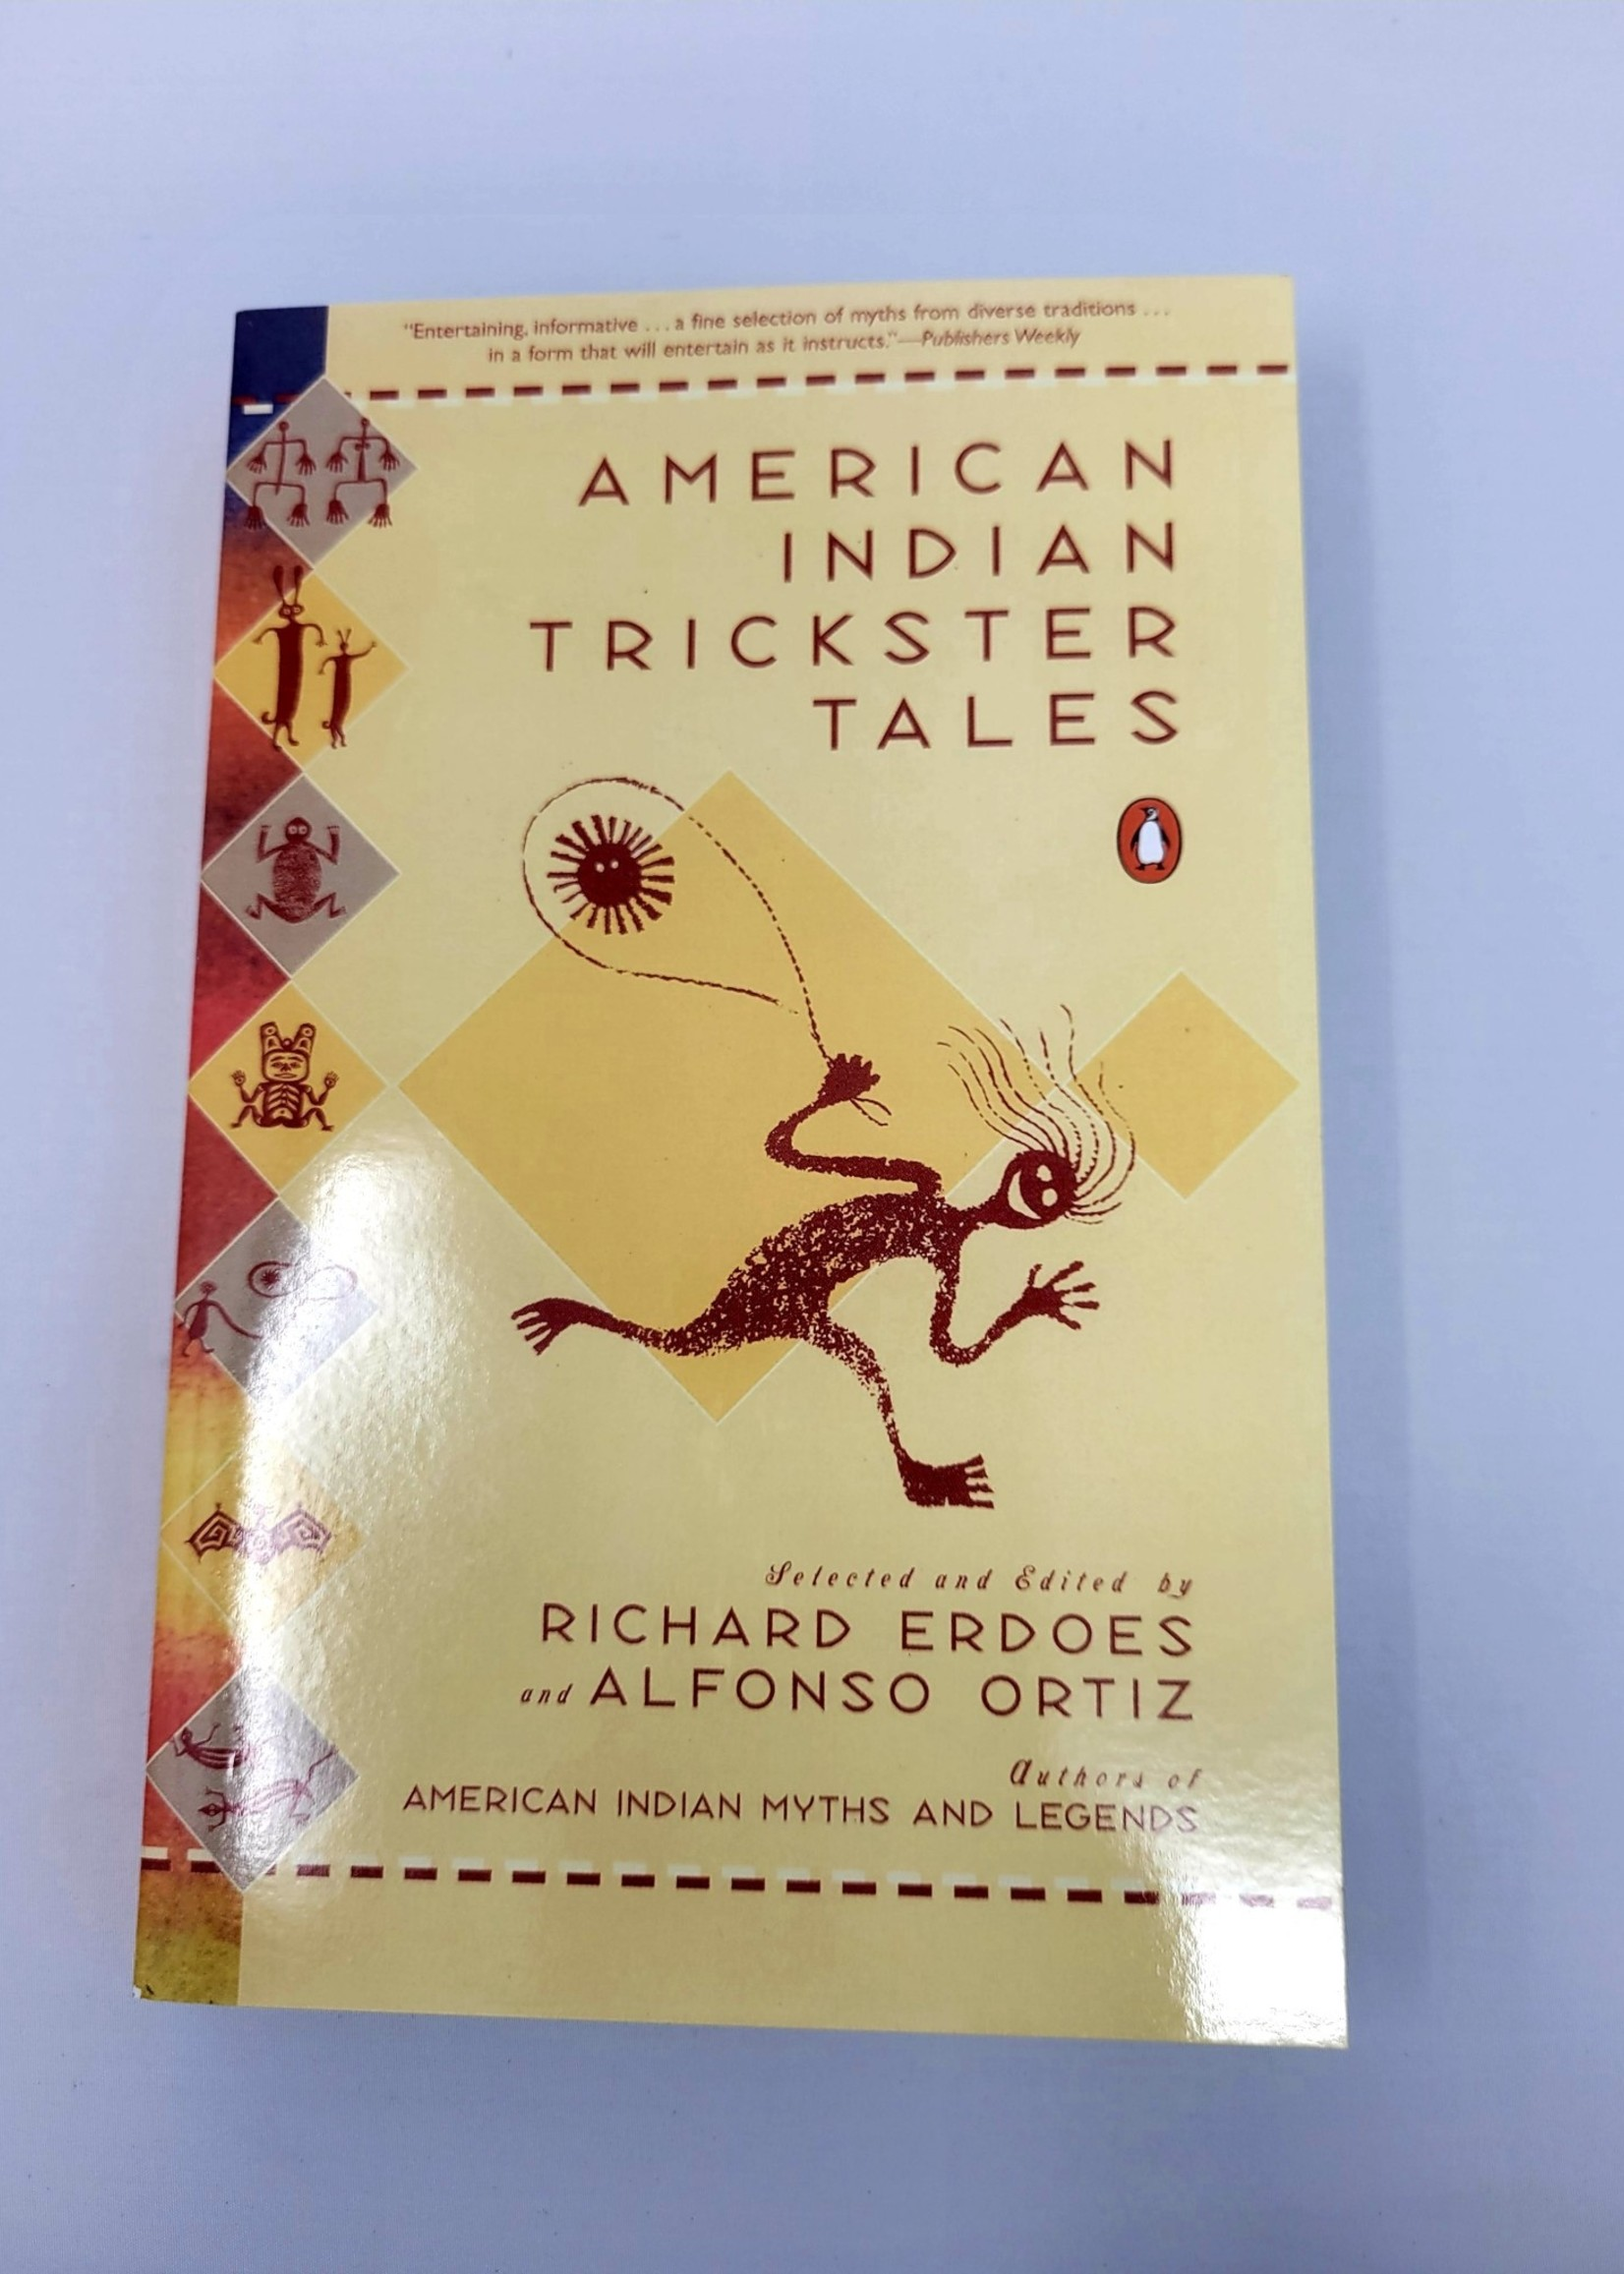 American Indian Trickster Tales By RICHARD ERDOES Illustrated by RICHARD ERDOES Edited by Alfonso Ortiz